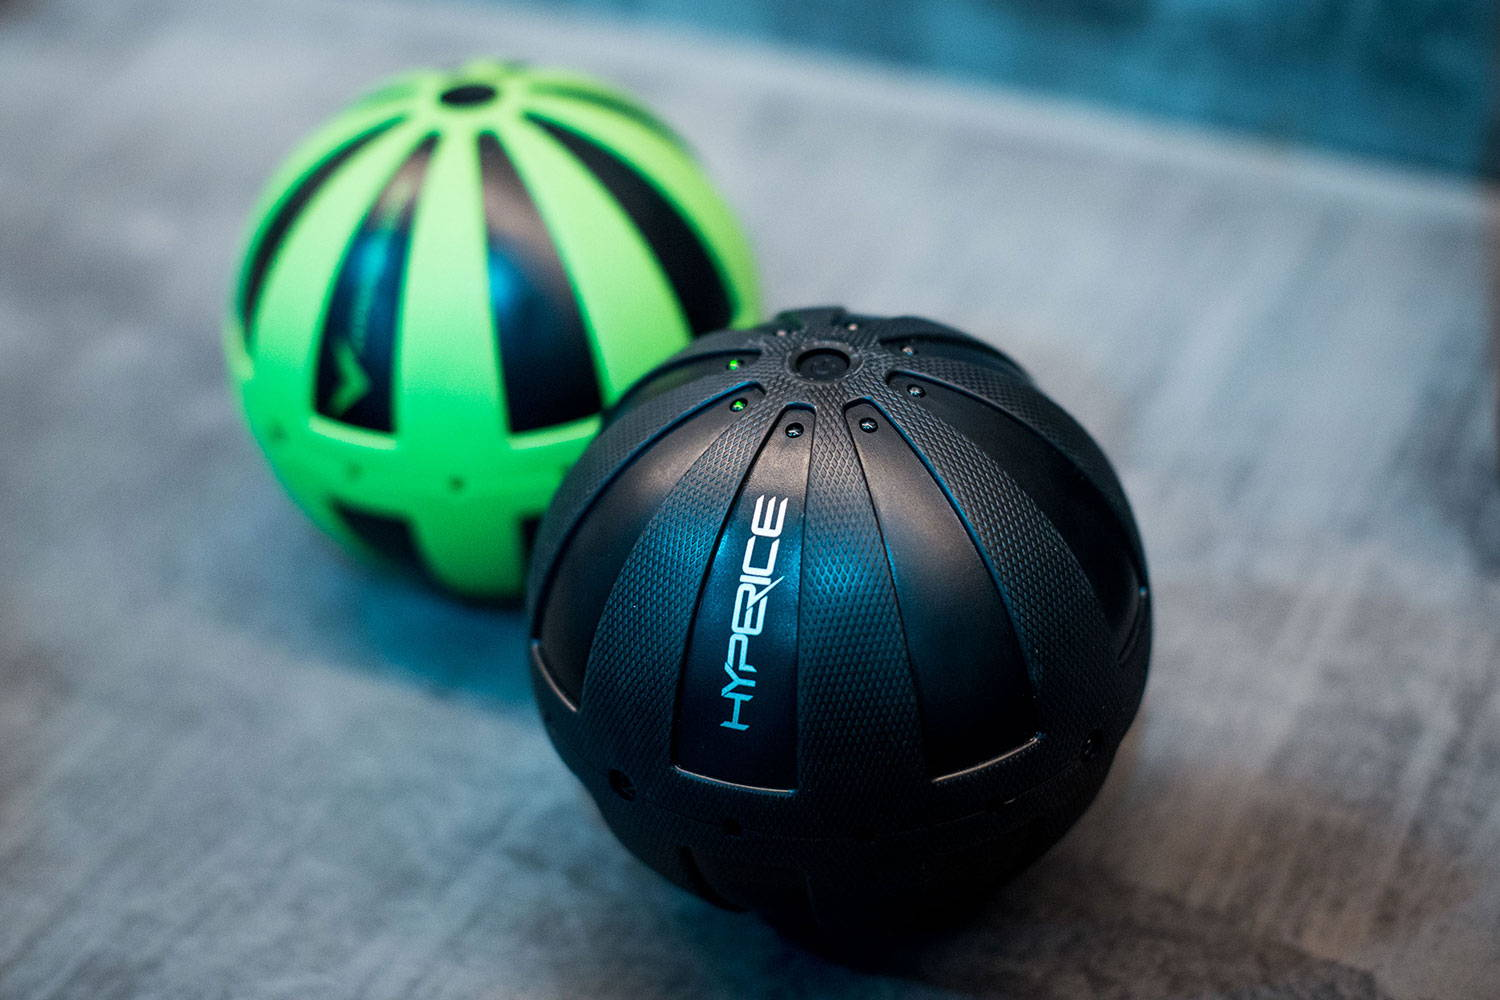 Hyperice Hypersphere green and black